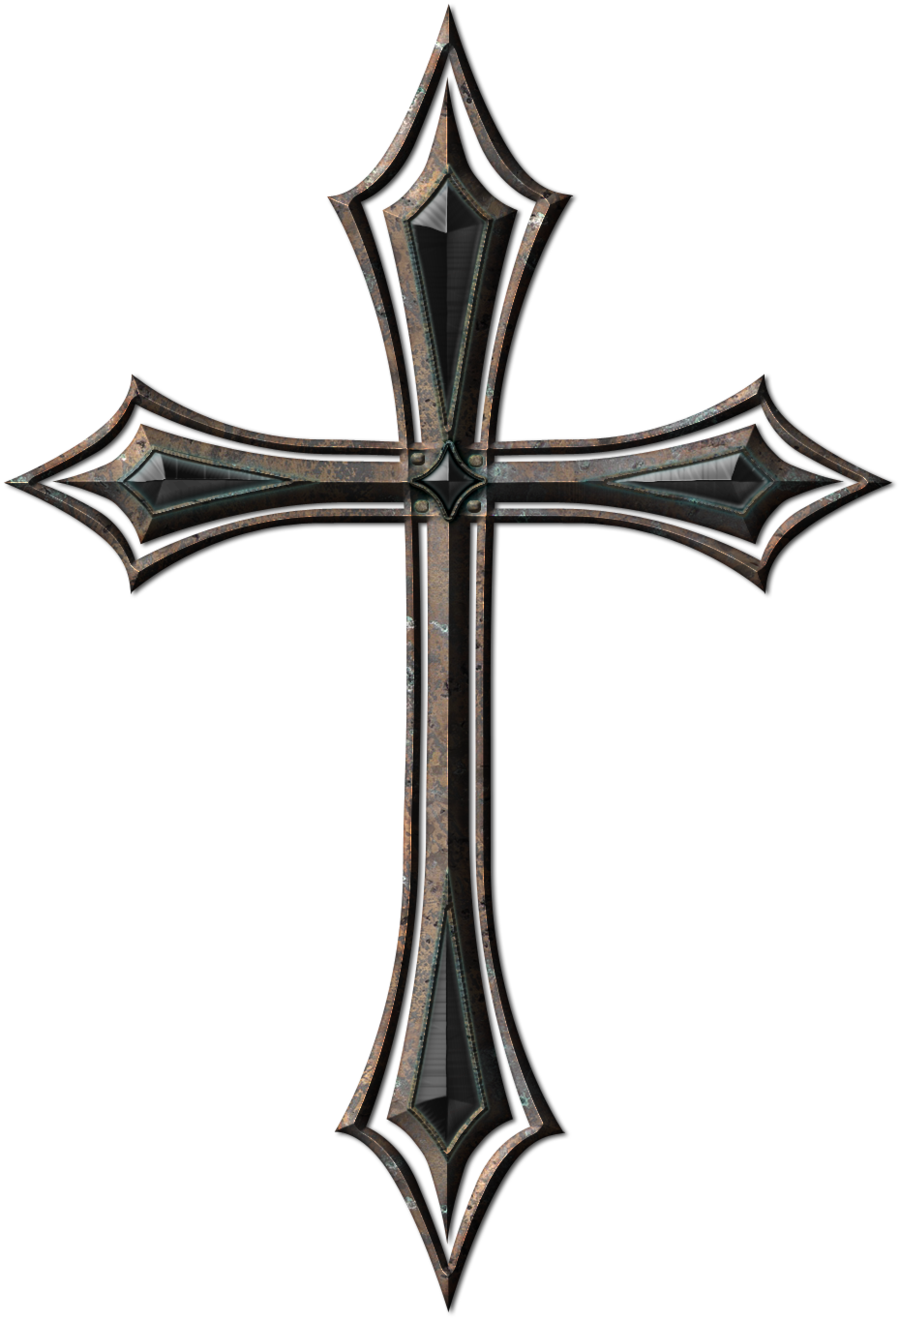 Christian vector gothic cross. Old metal by jojo